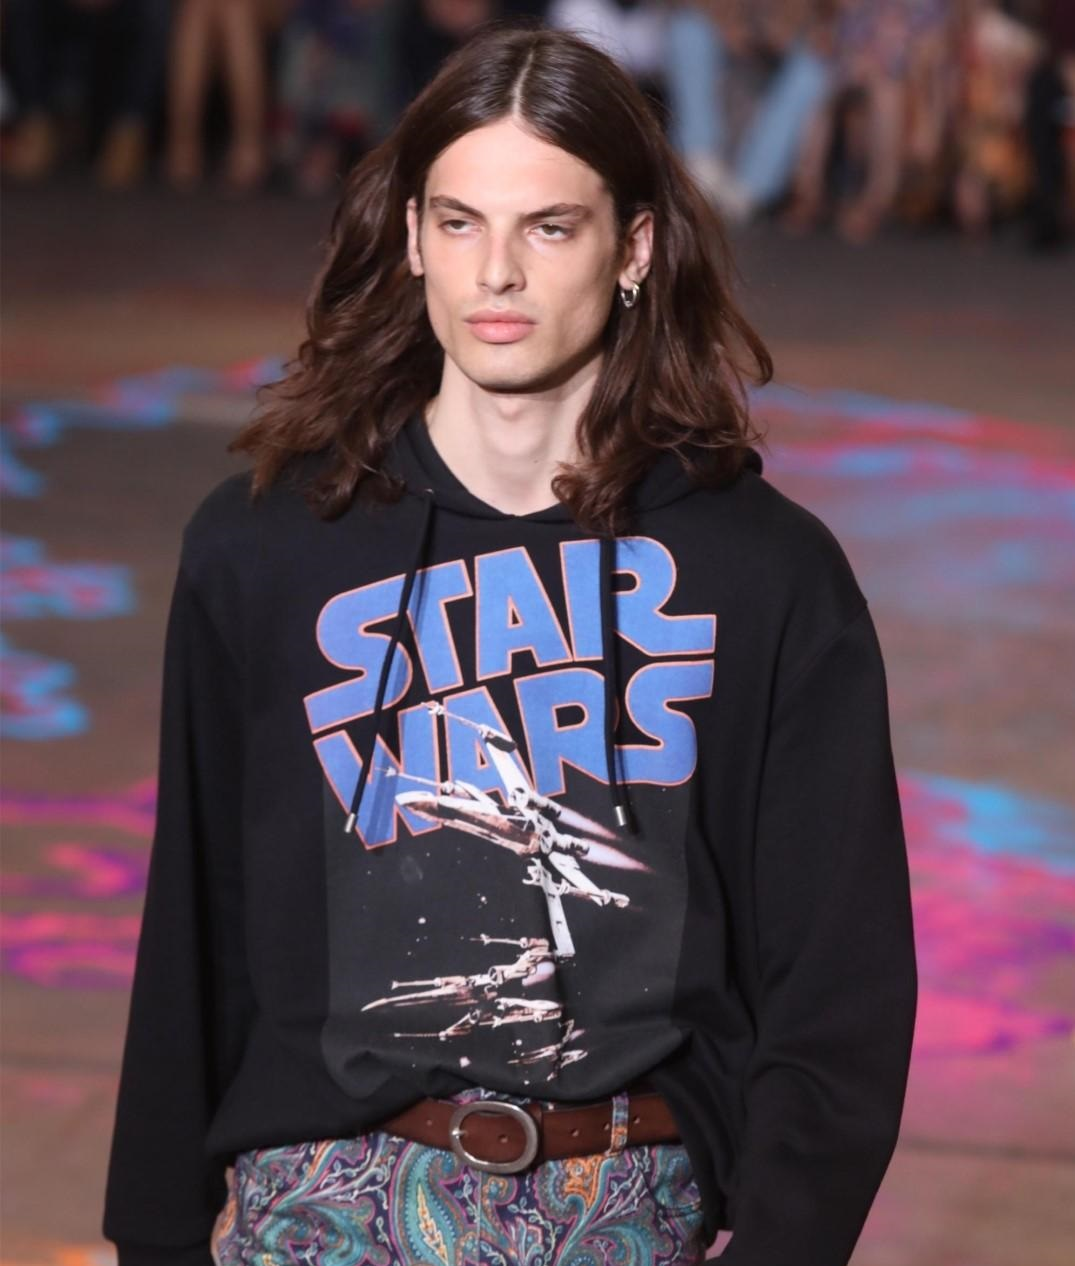 Etro spring-summer 2020, from Star Wars to the deserts of the Earth